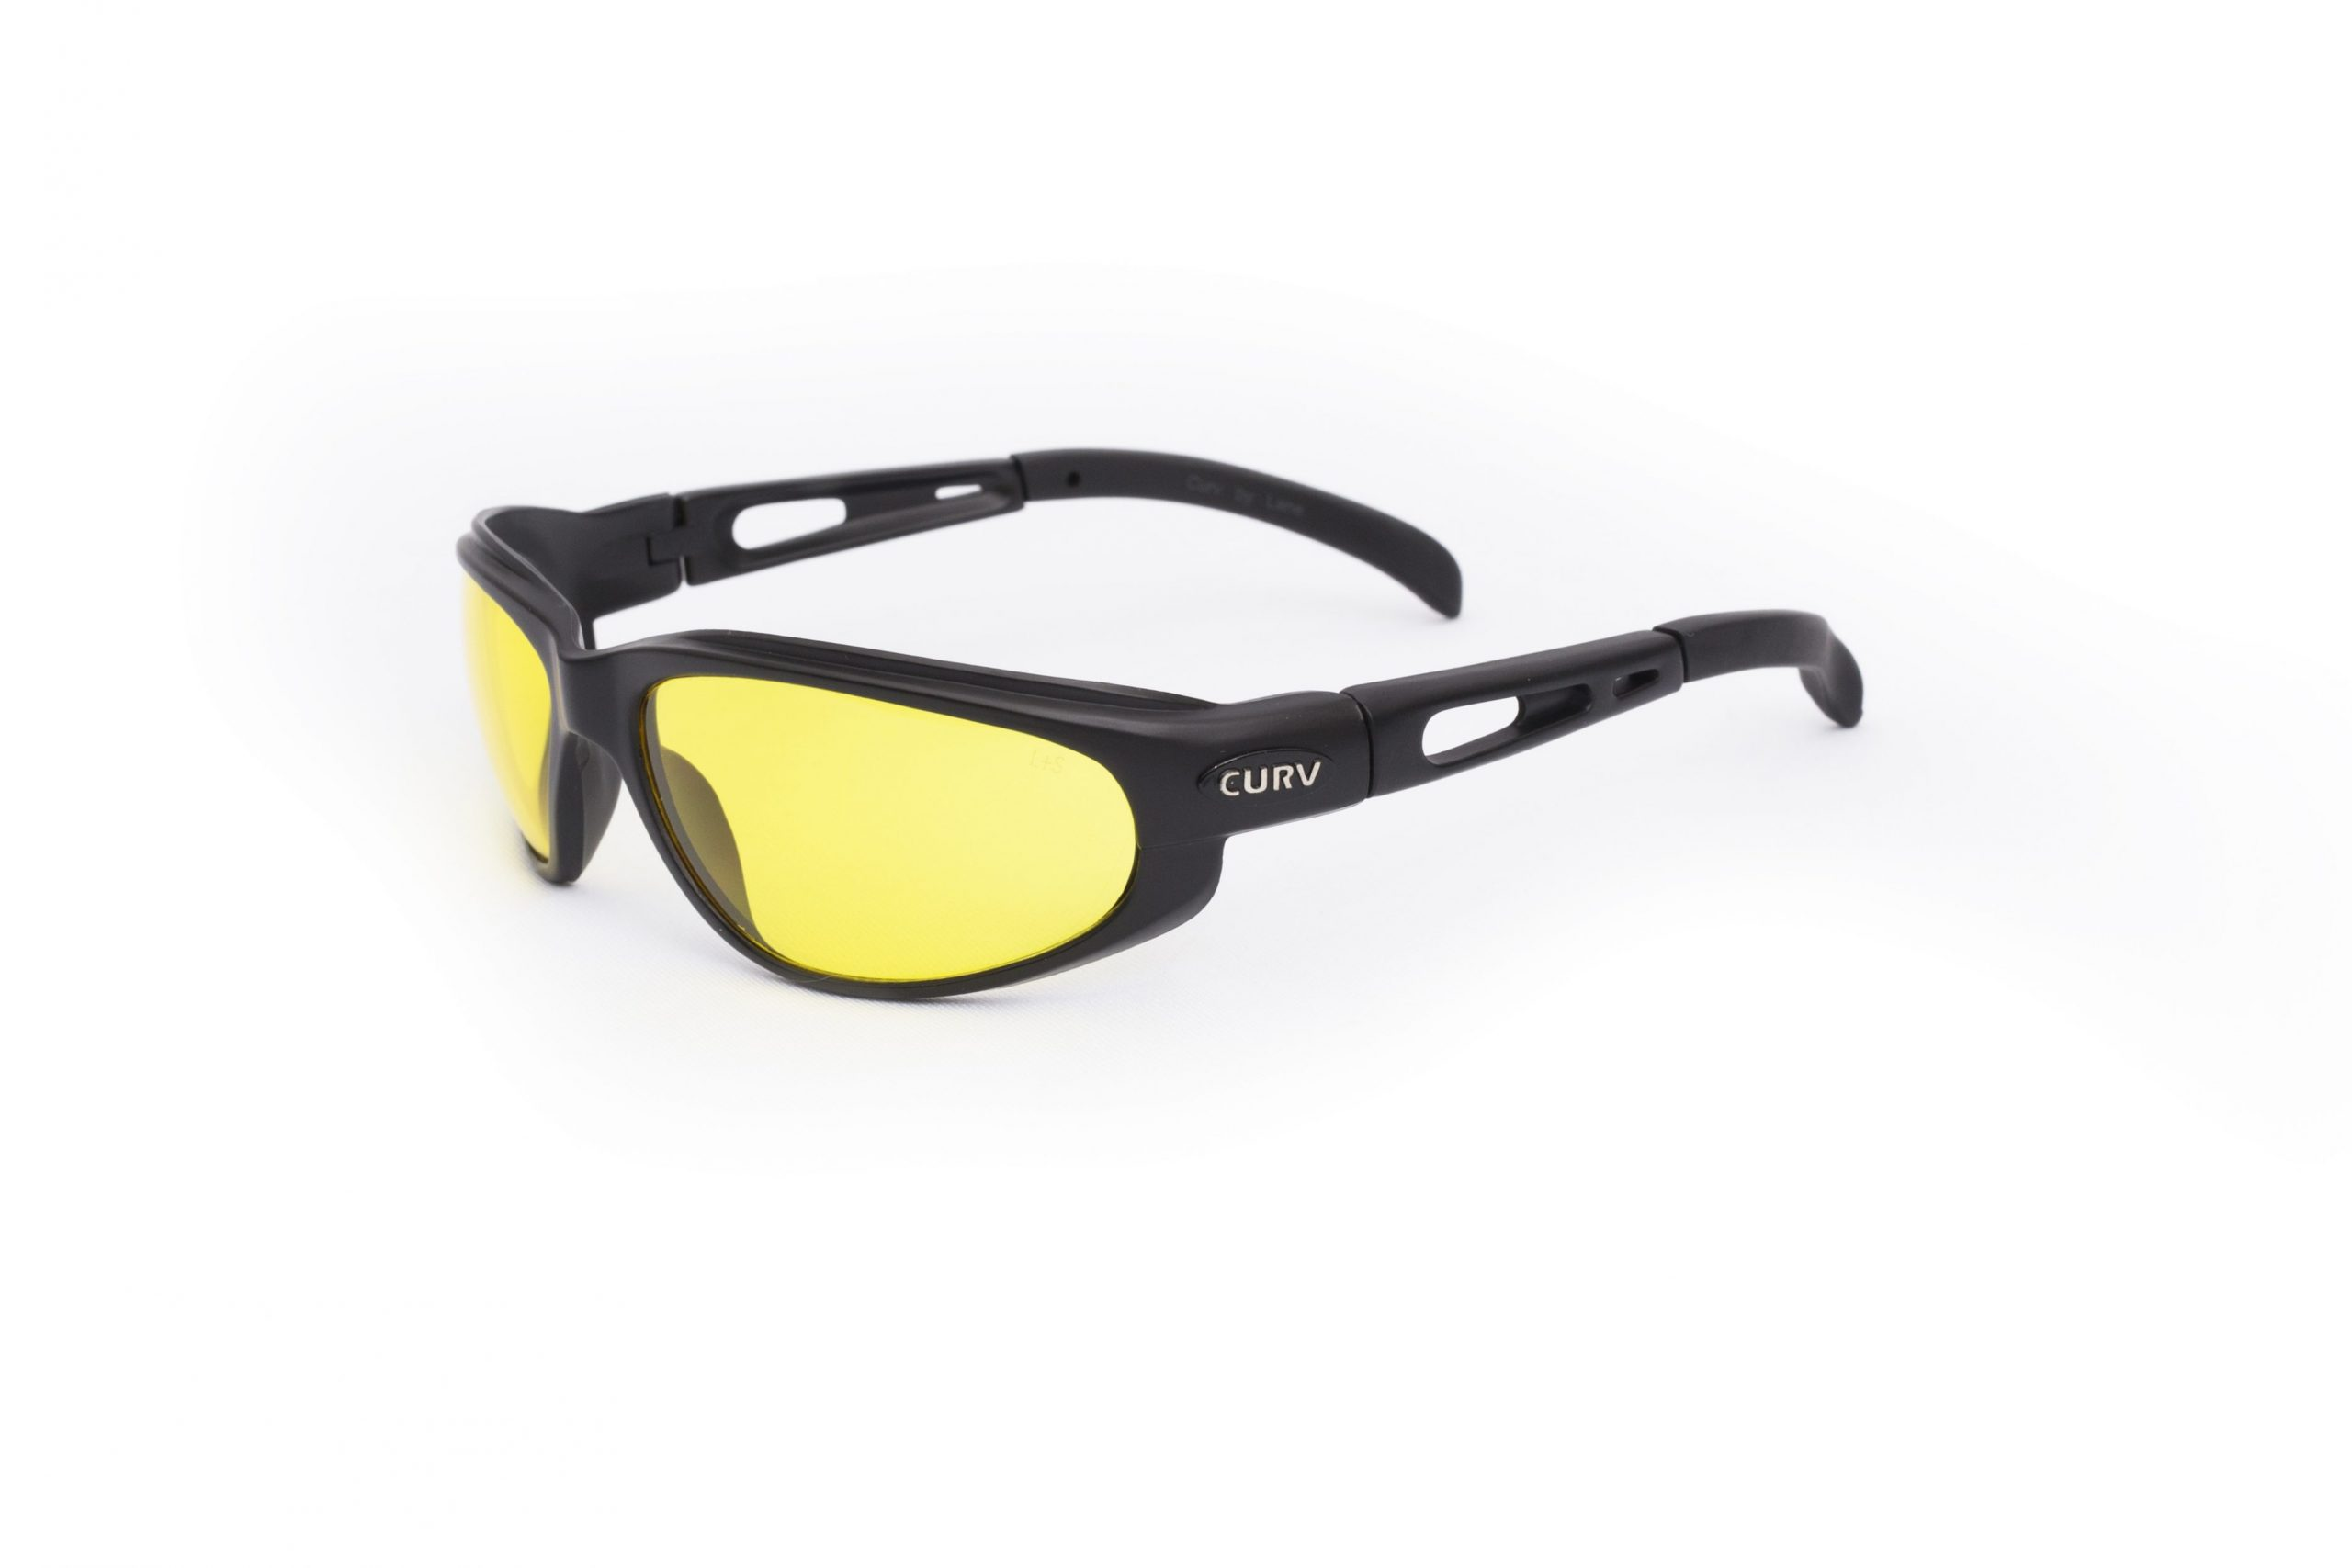 01-04 - Curv Yellow Lens Sunglasses with Matte Black Frame